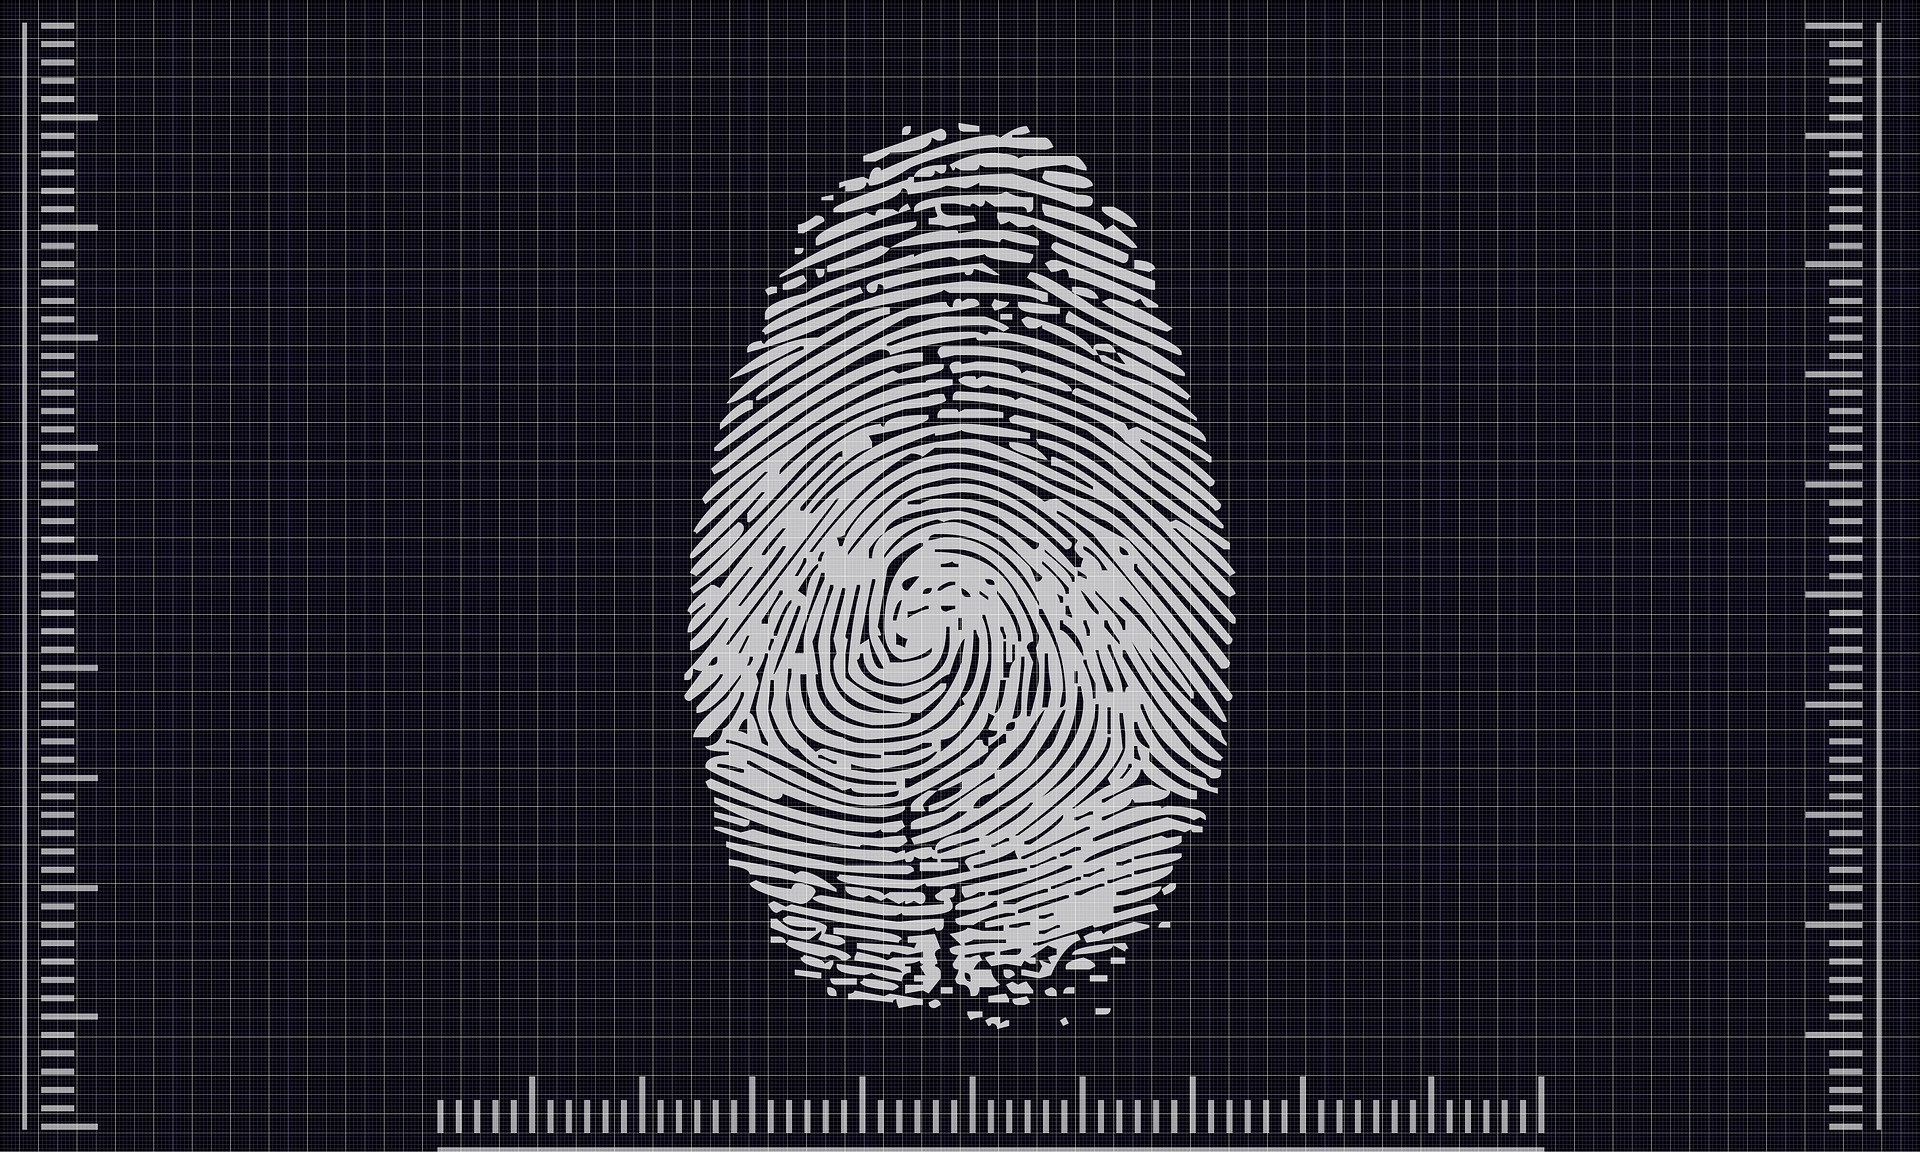 Fingerprinting in the ID card will become mandatory